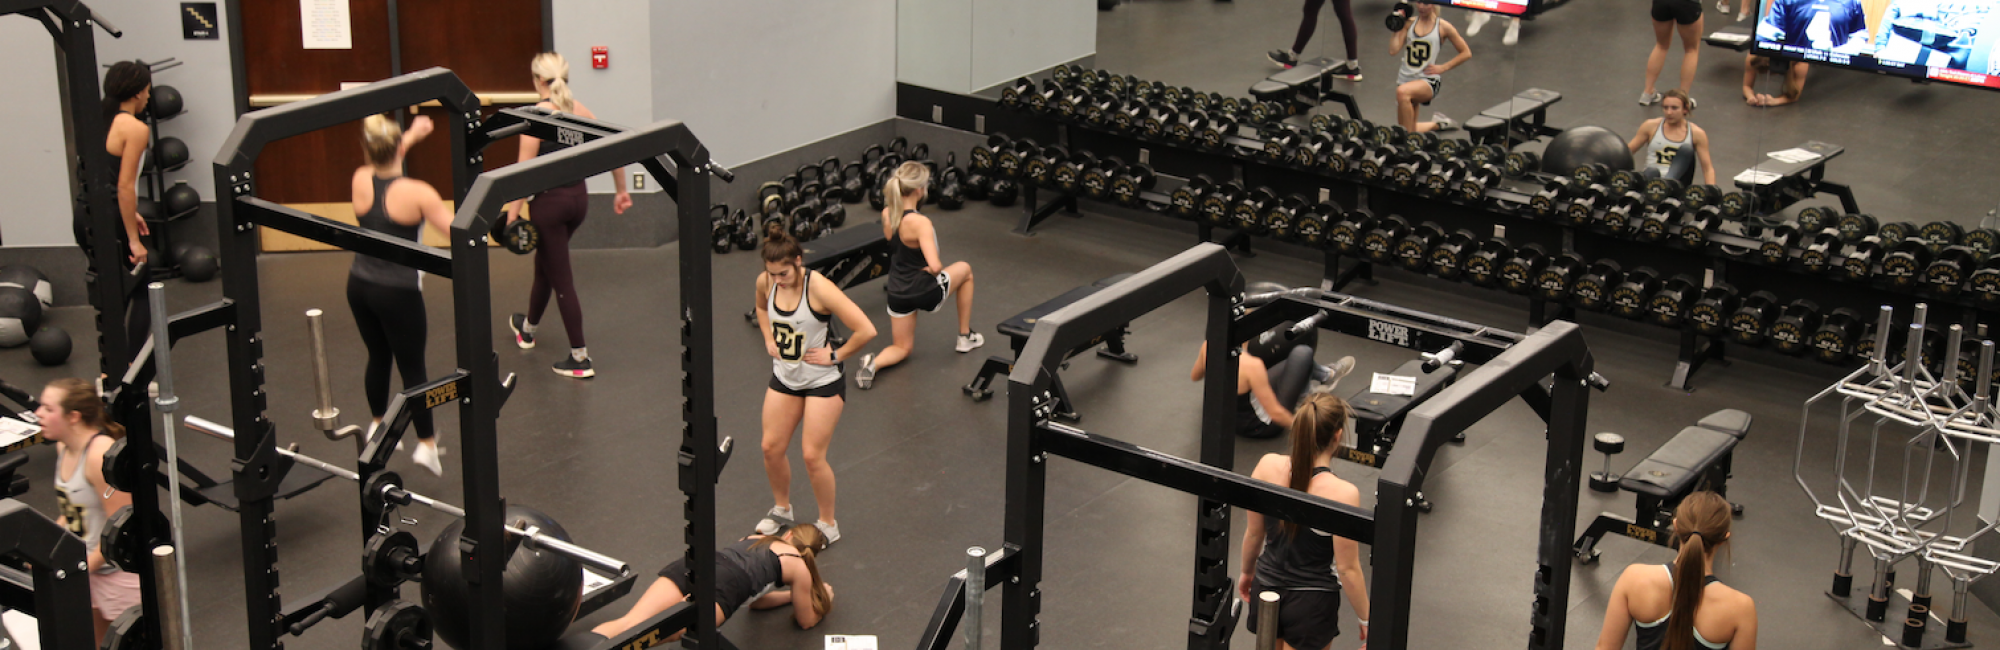 Female athletes work out in a gym